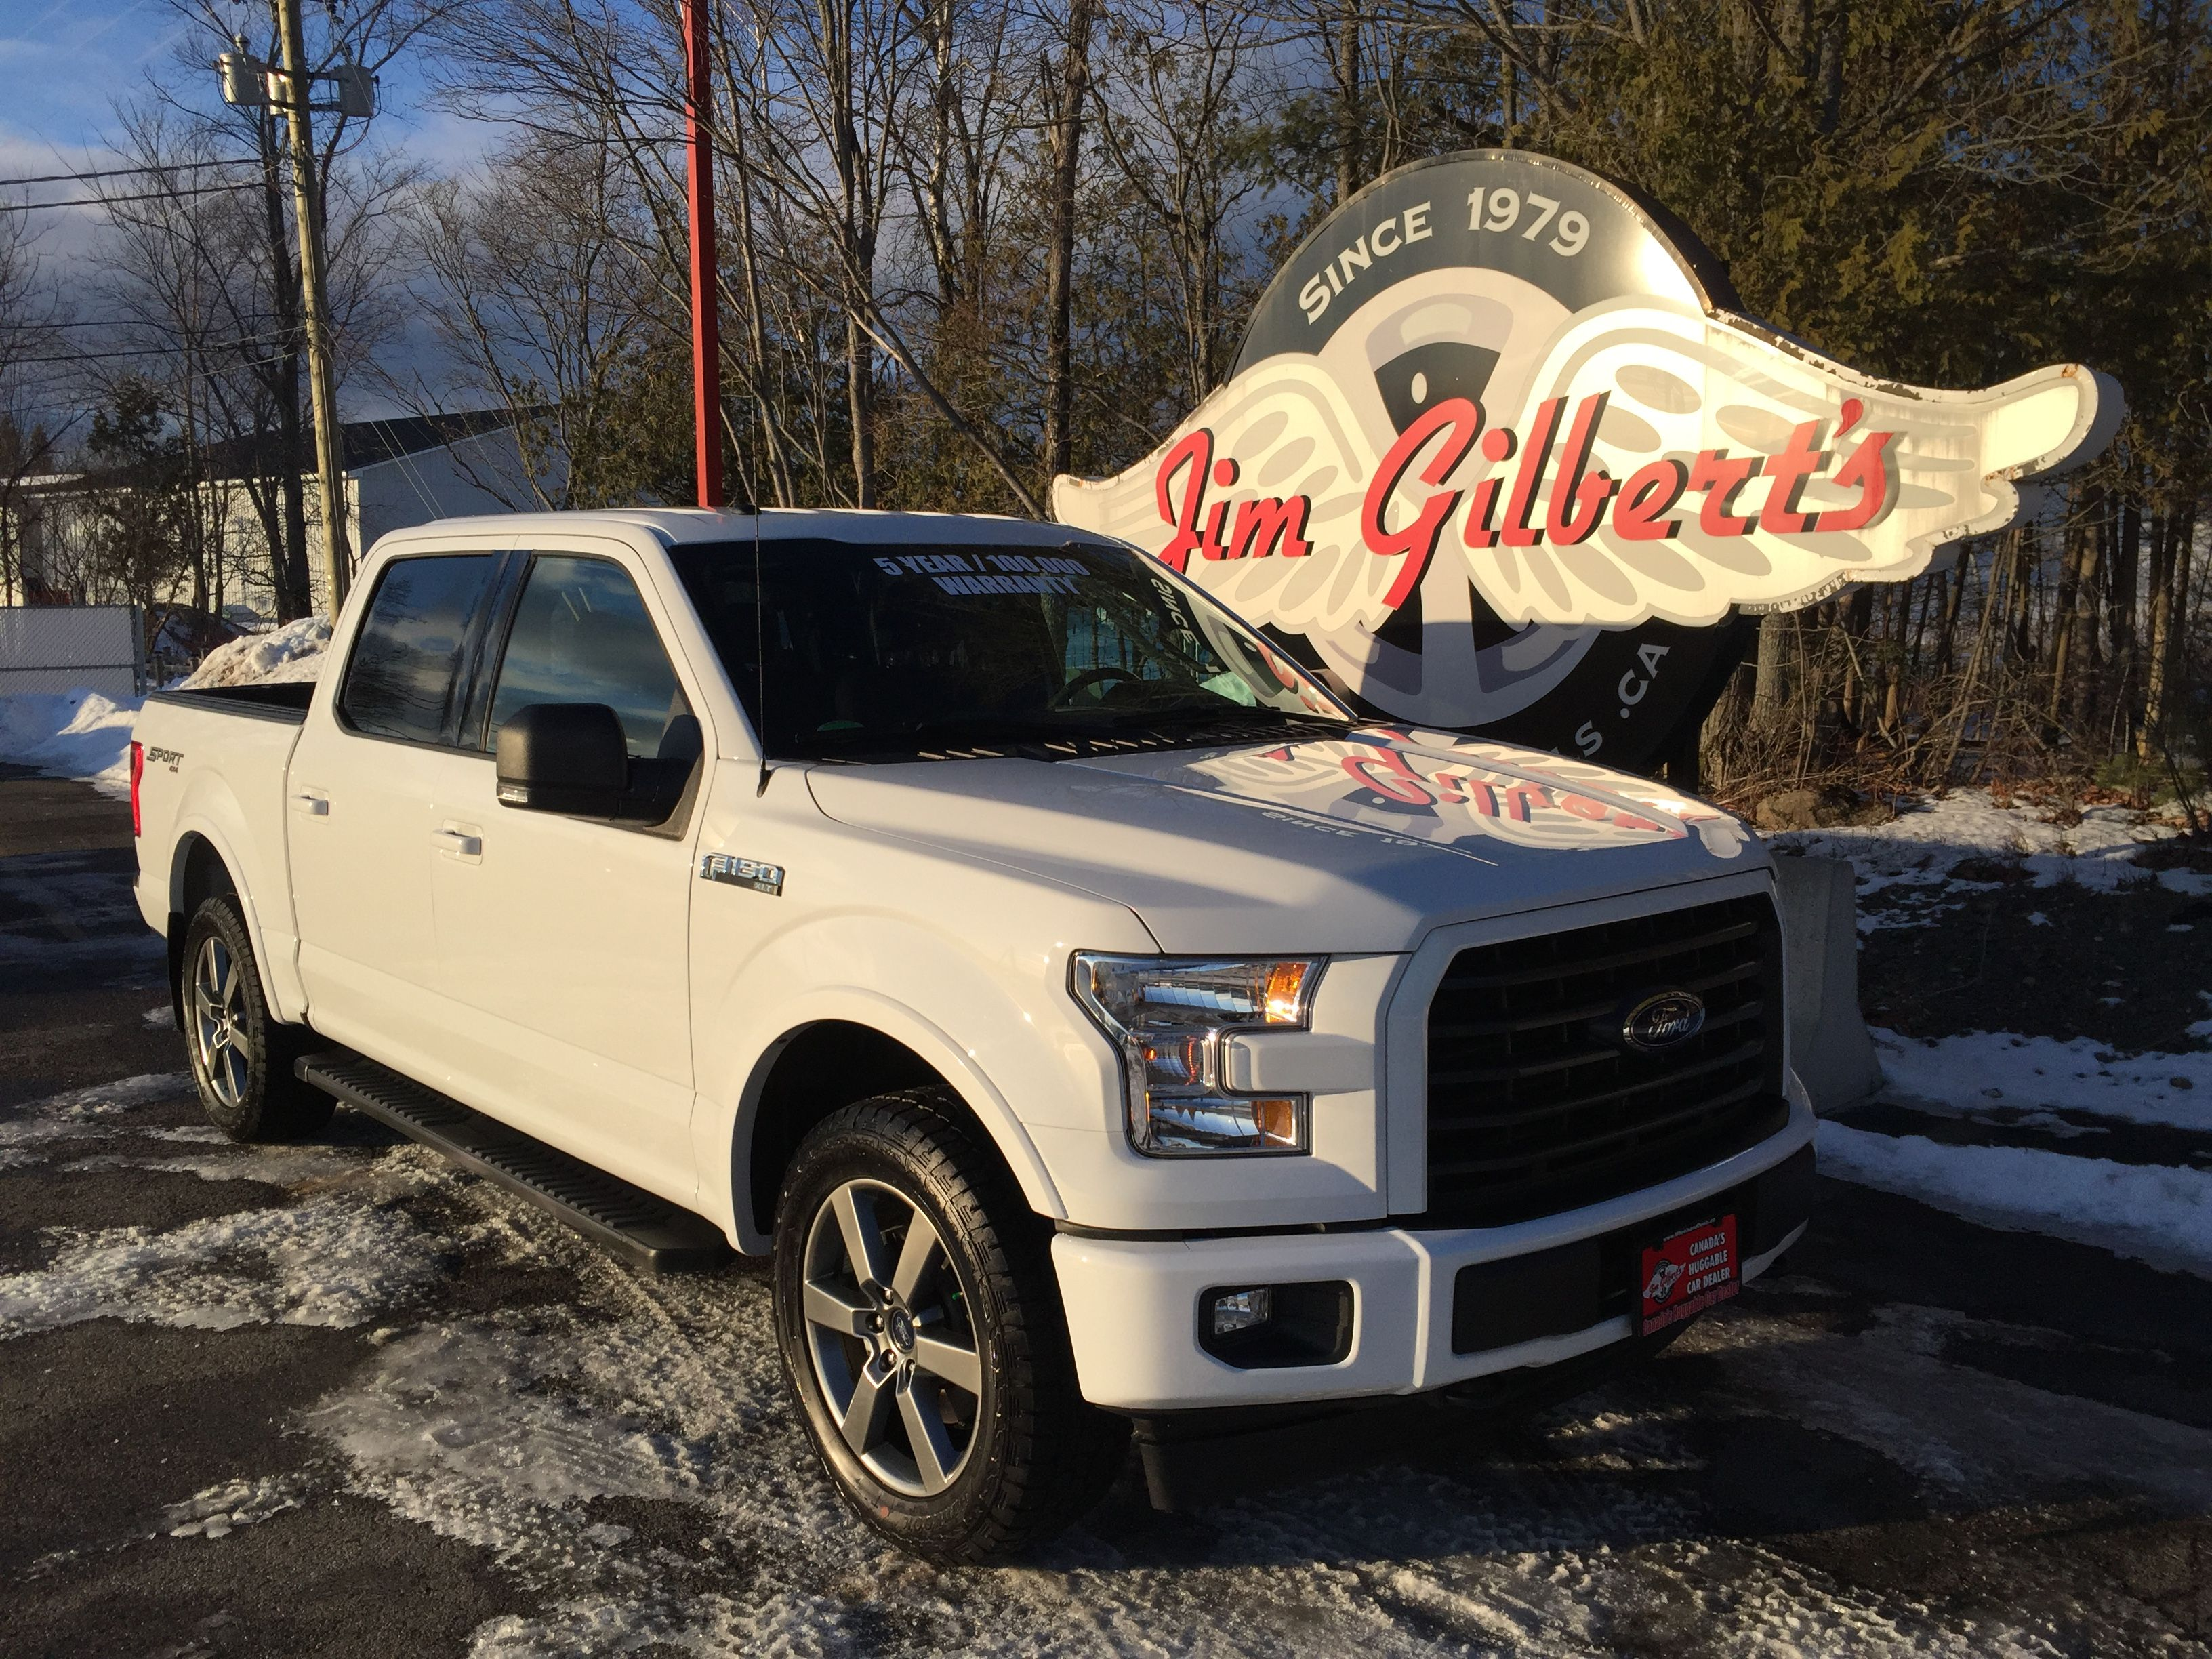 2017 Ford F150 Sport Crew Cab 4x4, 302A Package, Heated